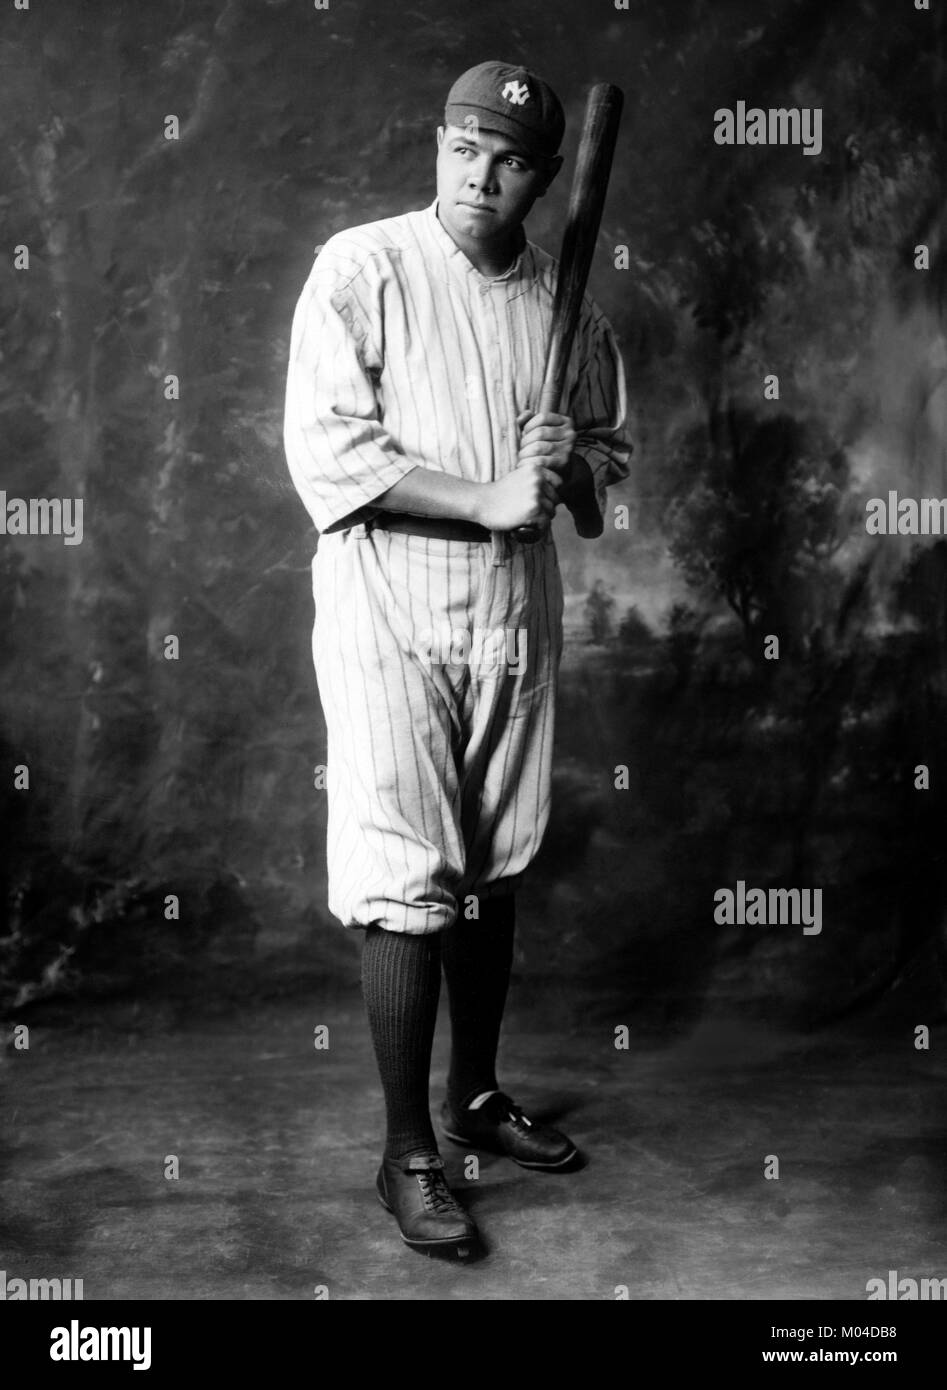 a history and biography of george herman ruth an american baseball player Greatest nine- or ten-week stretch of play in baseball history ruth was the second-fastest player on the 3 george herman ruth, babe ruth's own.